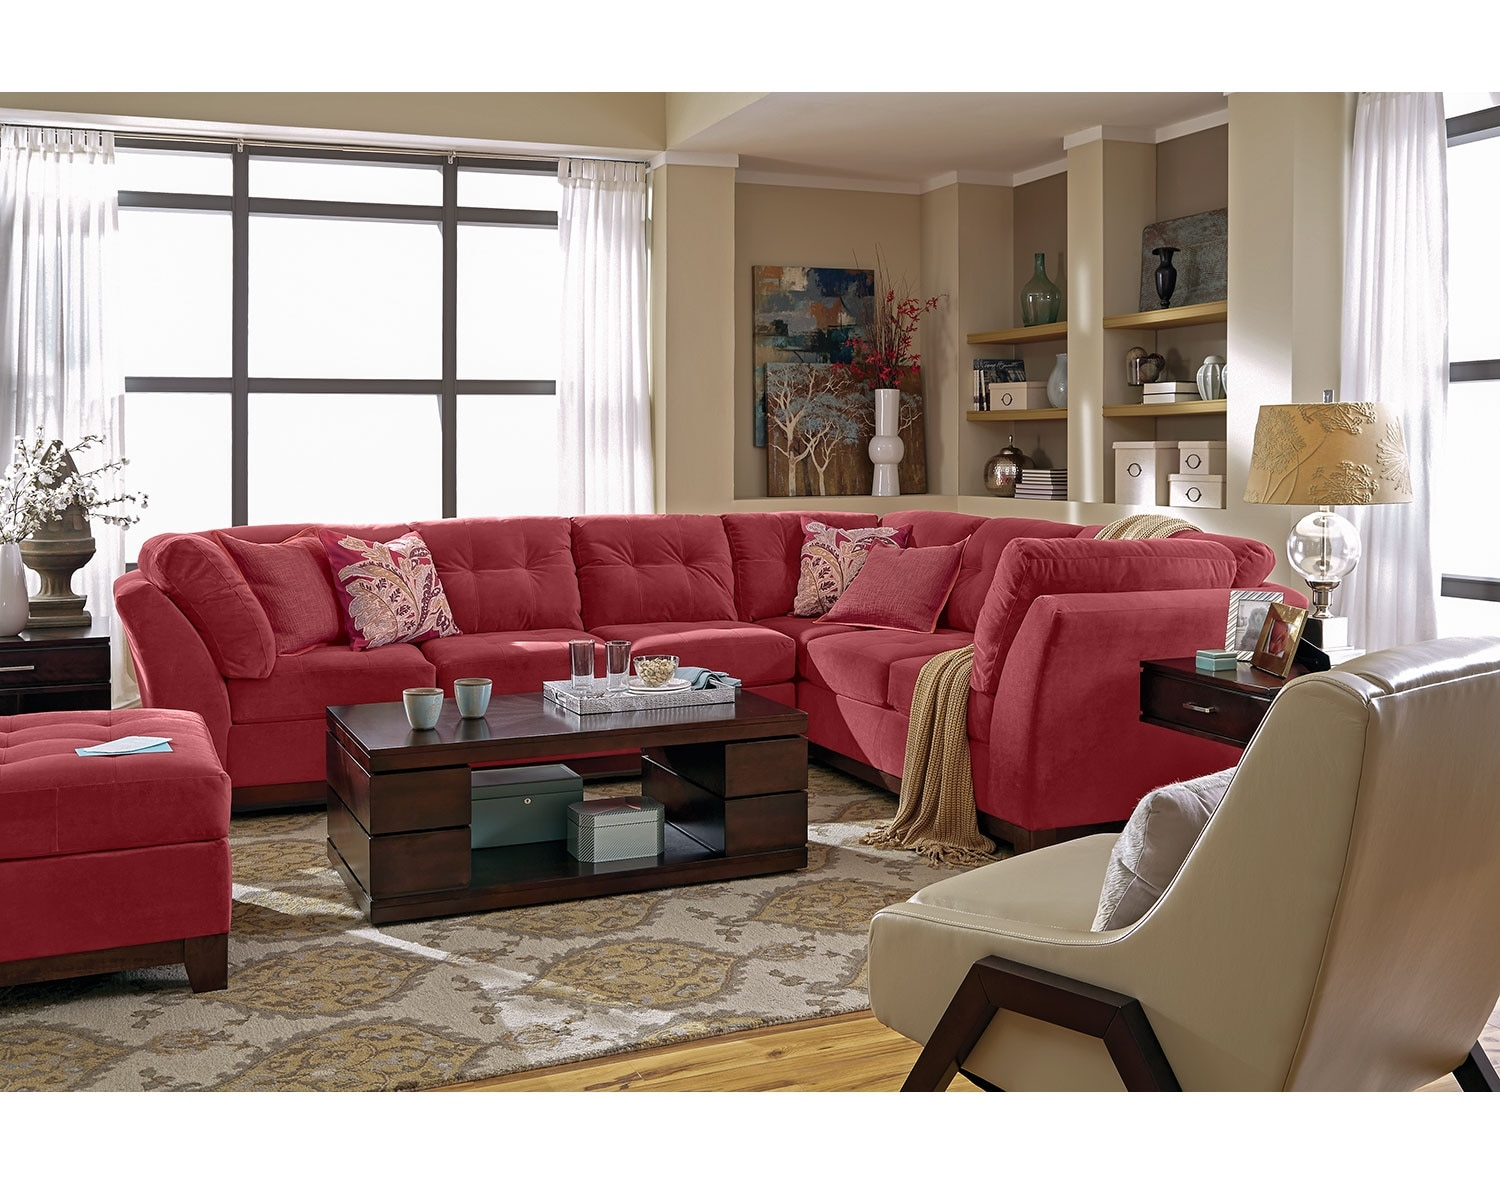 Living Room Furniture - The Brookside II Poppy Collection - 3 Pc. Sectional